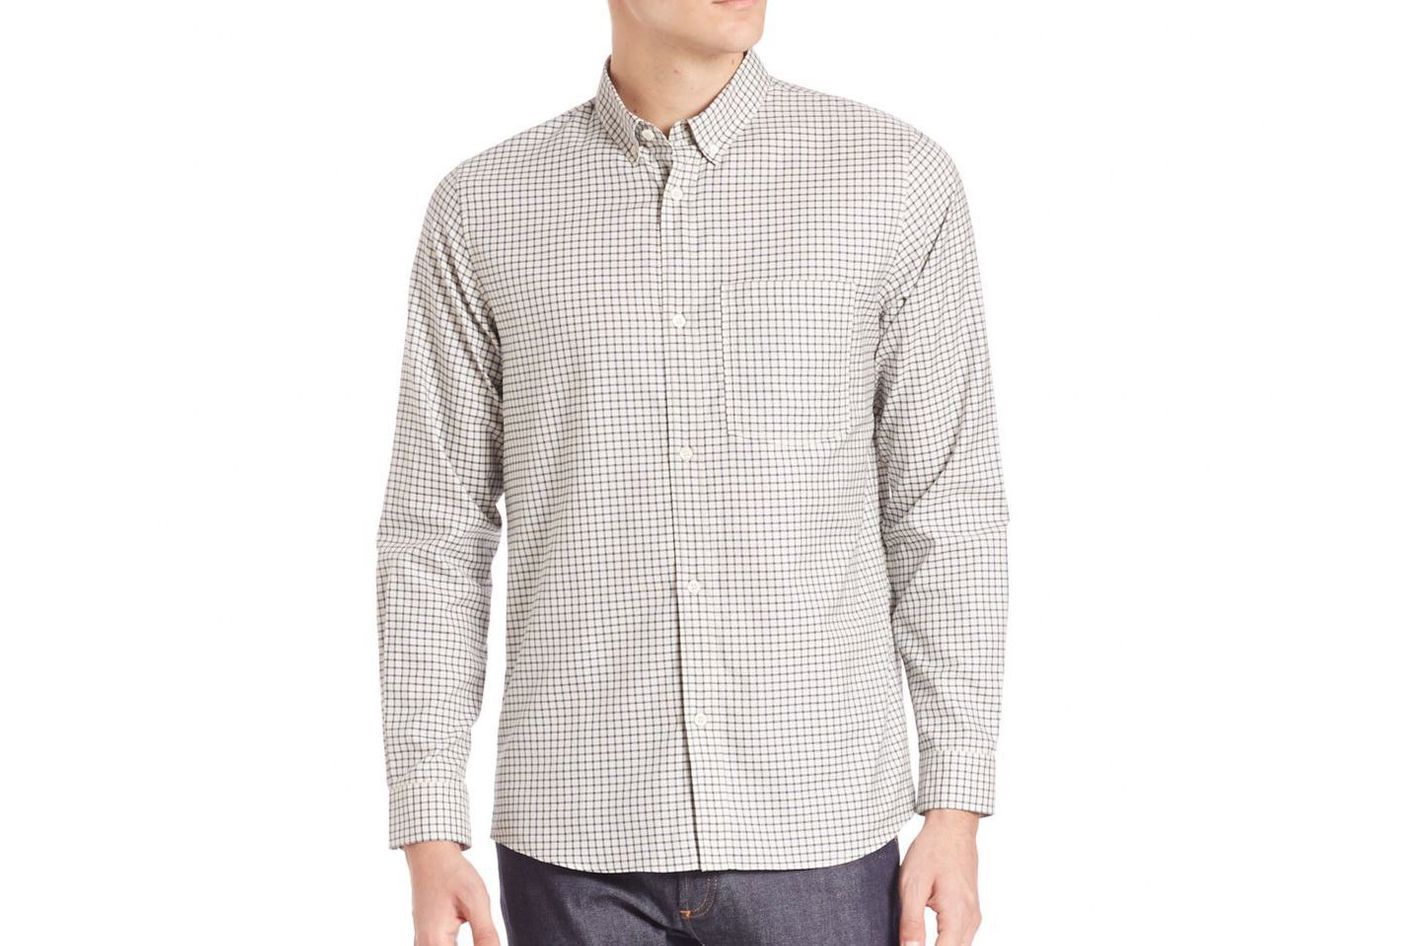 A.P.C. Chemise clift button down shirt